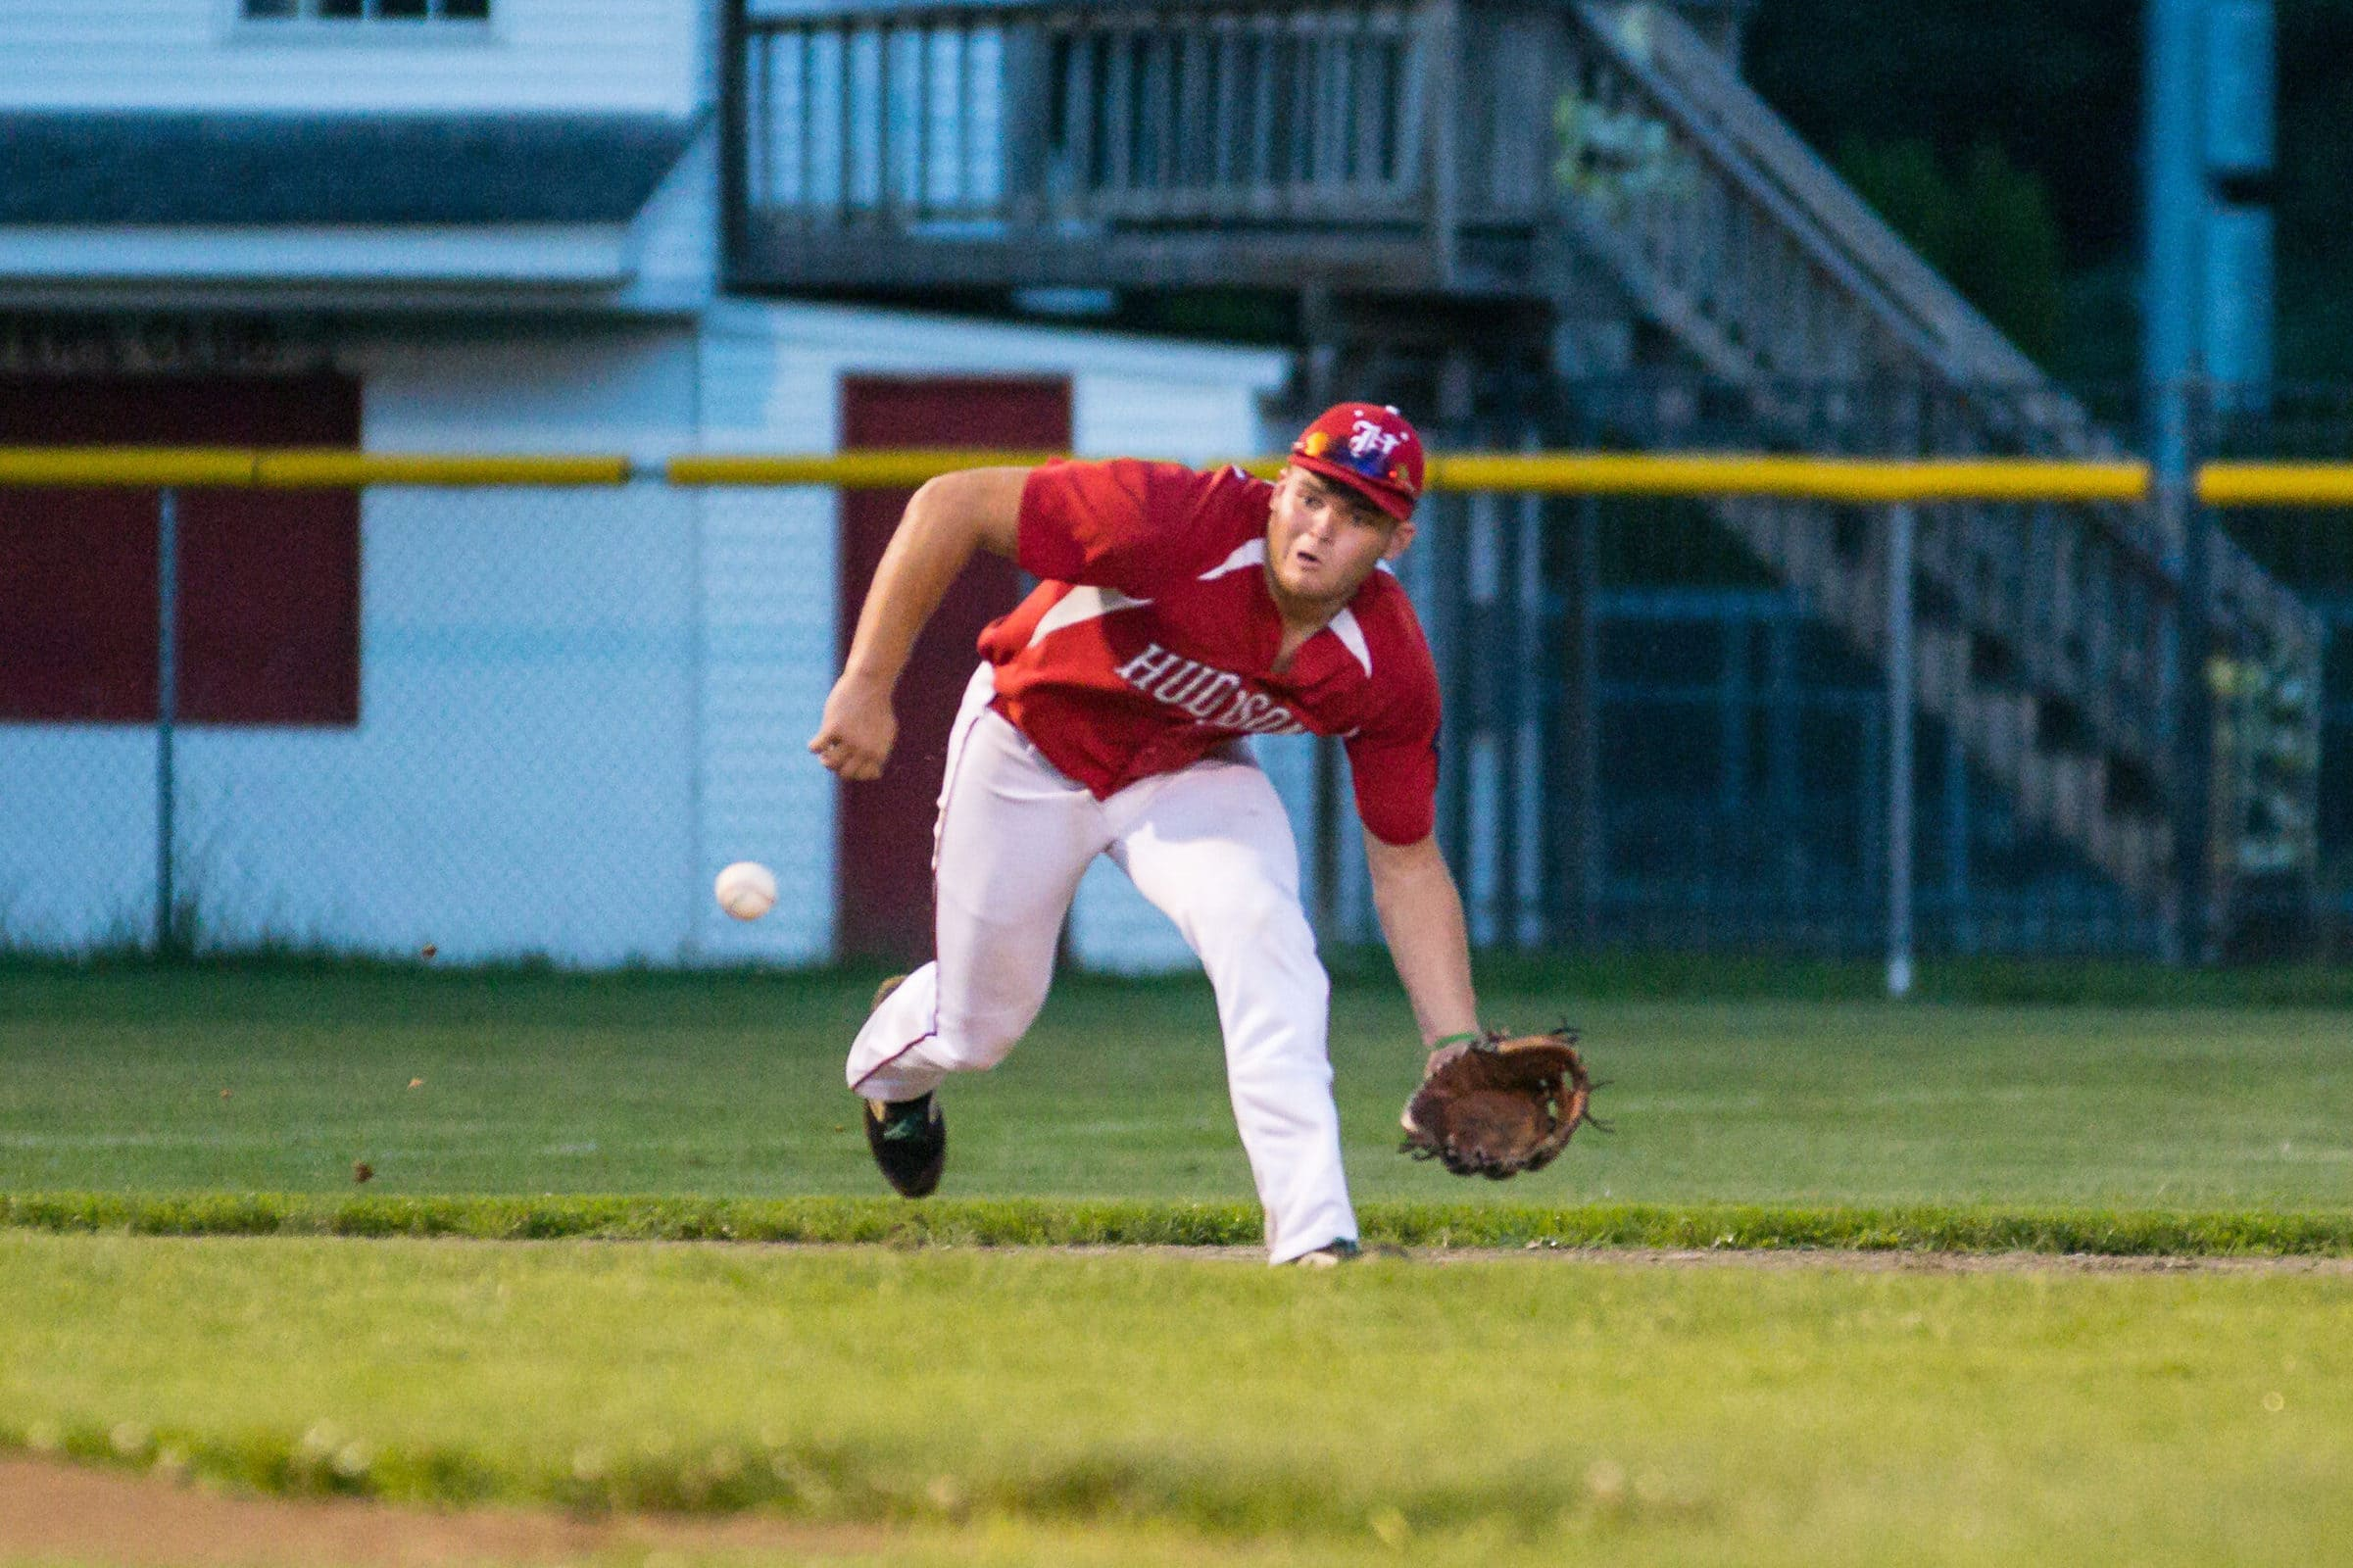 A Hudson player charges forward to corral a ground ball.